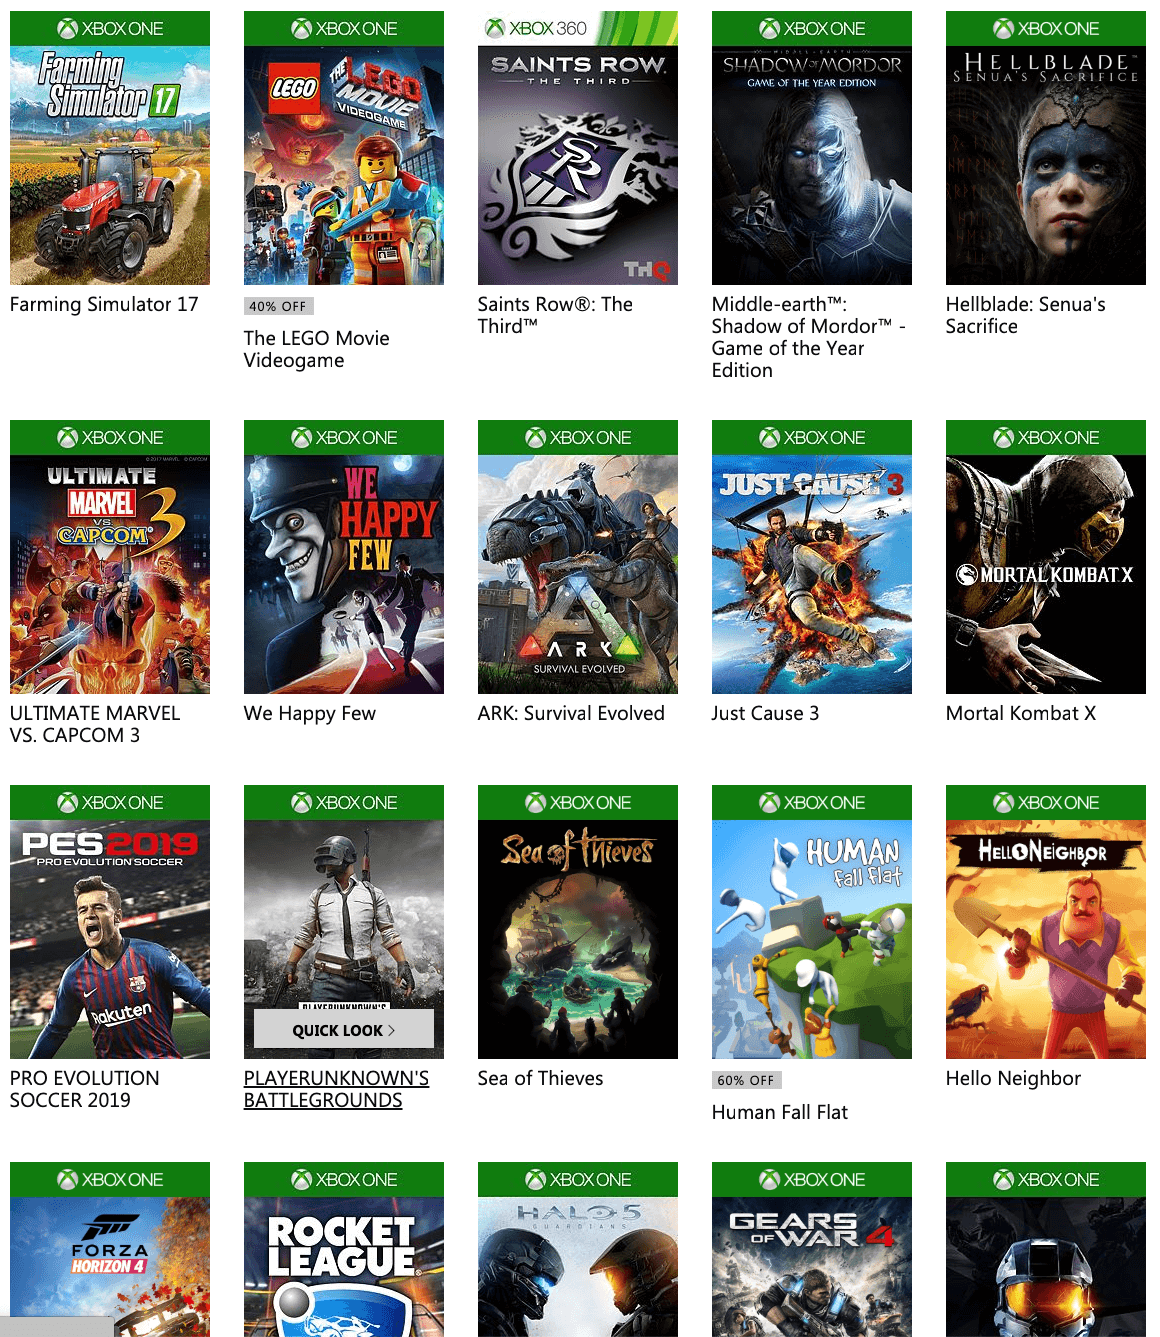 The Xbox Game pass library